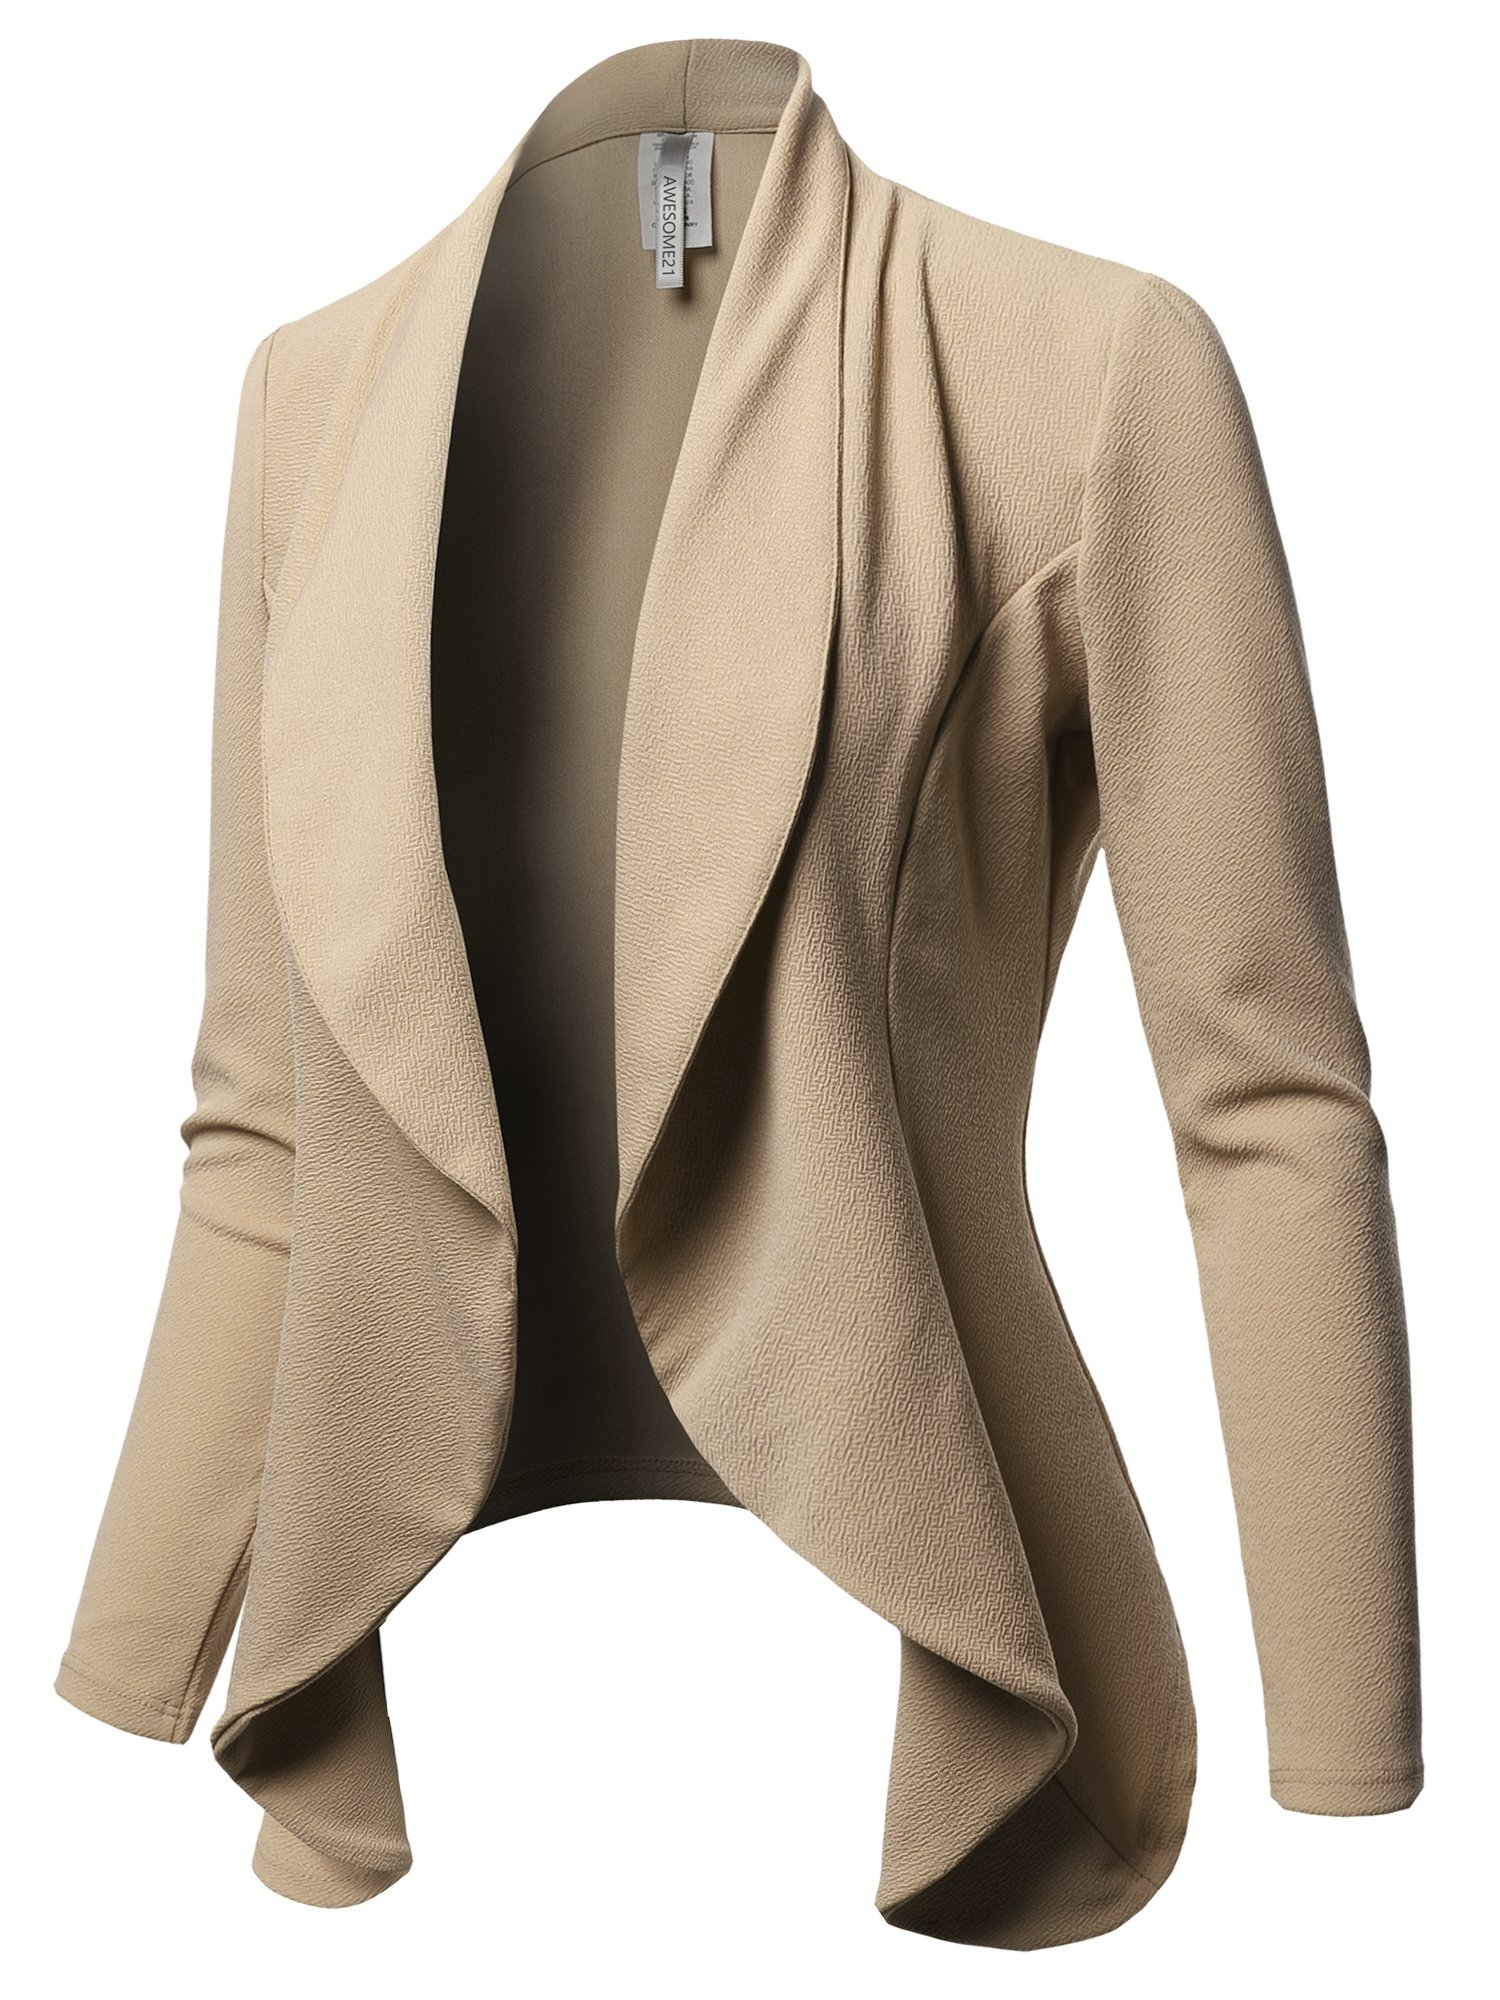 Awesome21 Solid Formal Office Style Open Front Long Sleeves Blazer - Made in USA Khaki Size S